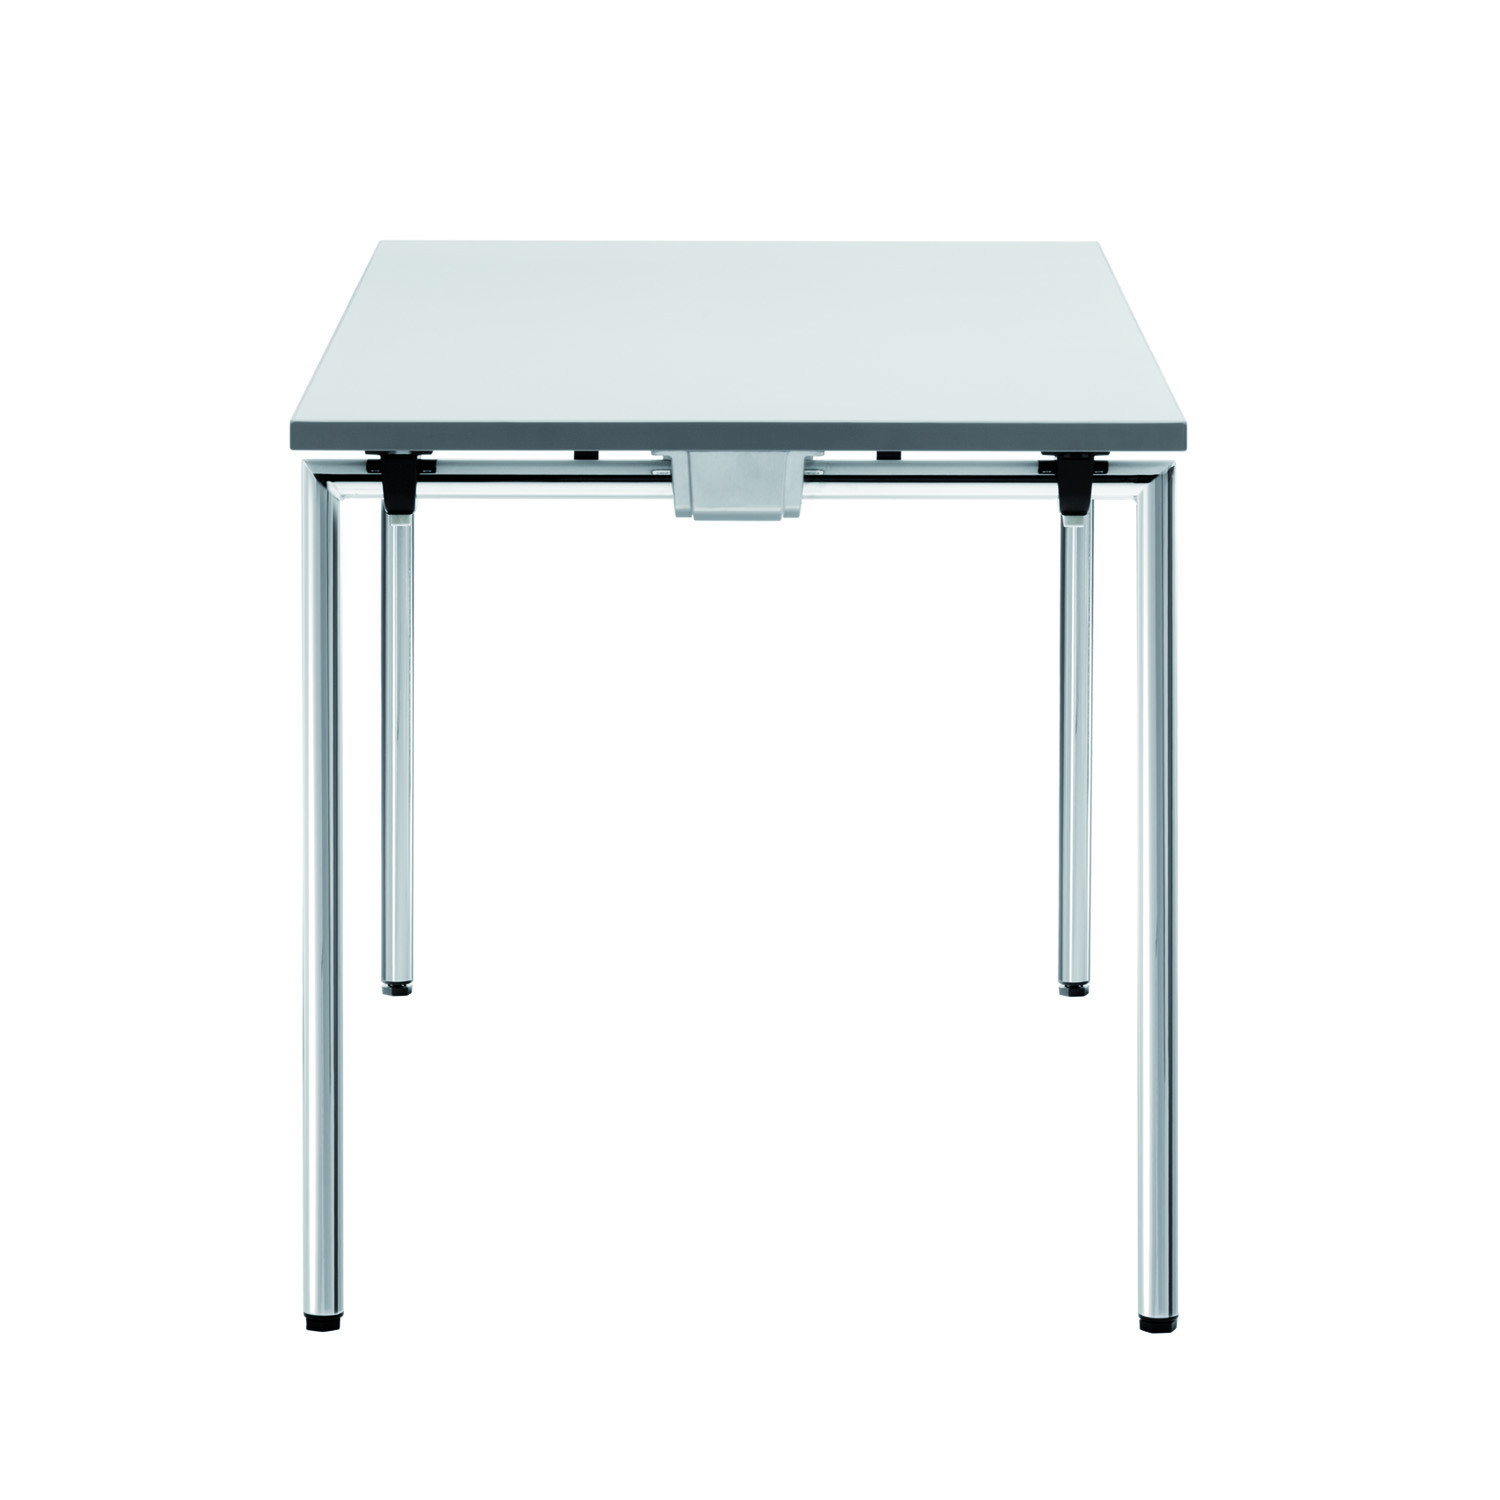 Plenar 2 Tables